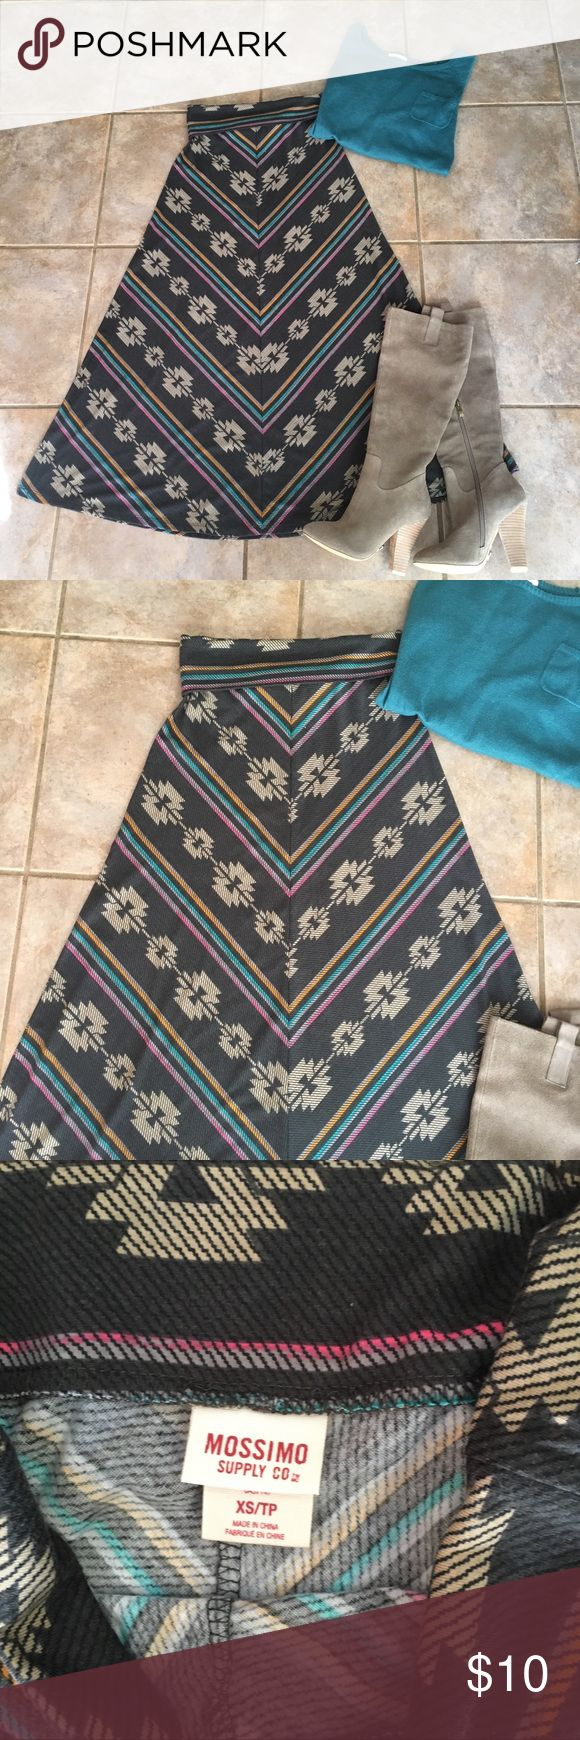 Tribal Maxi Skirt Awesome colors and pattern. Never worn. It's just been hanging in my closet. Skirts Maxi #FullMoonandJustMoon